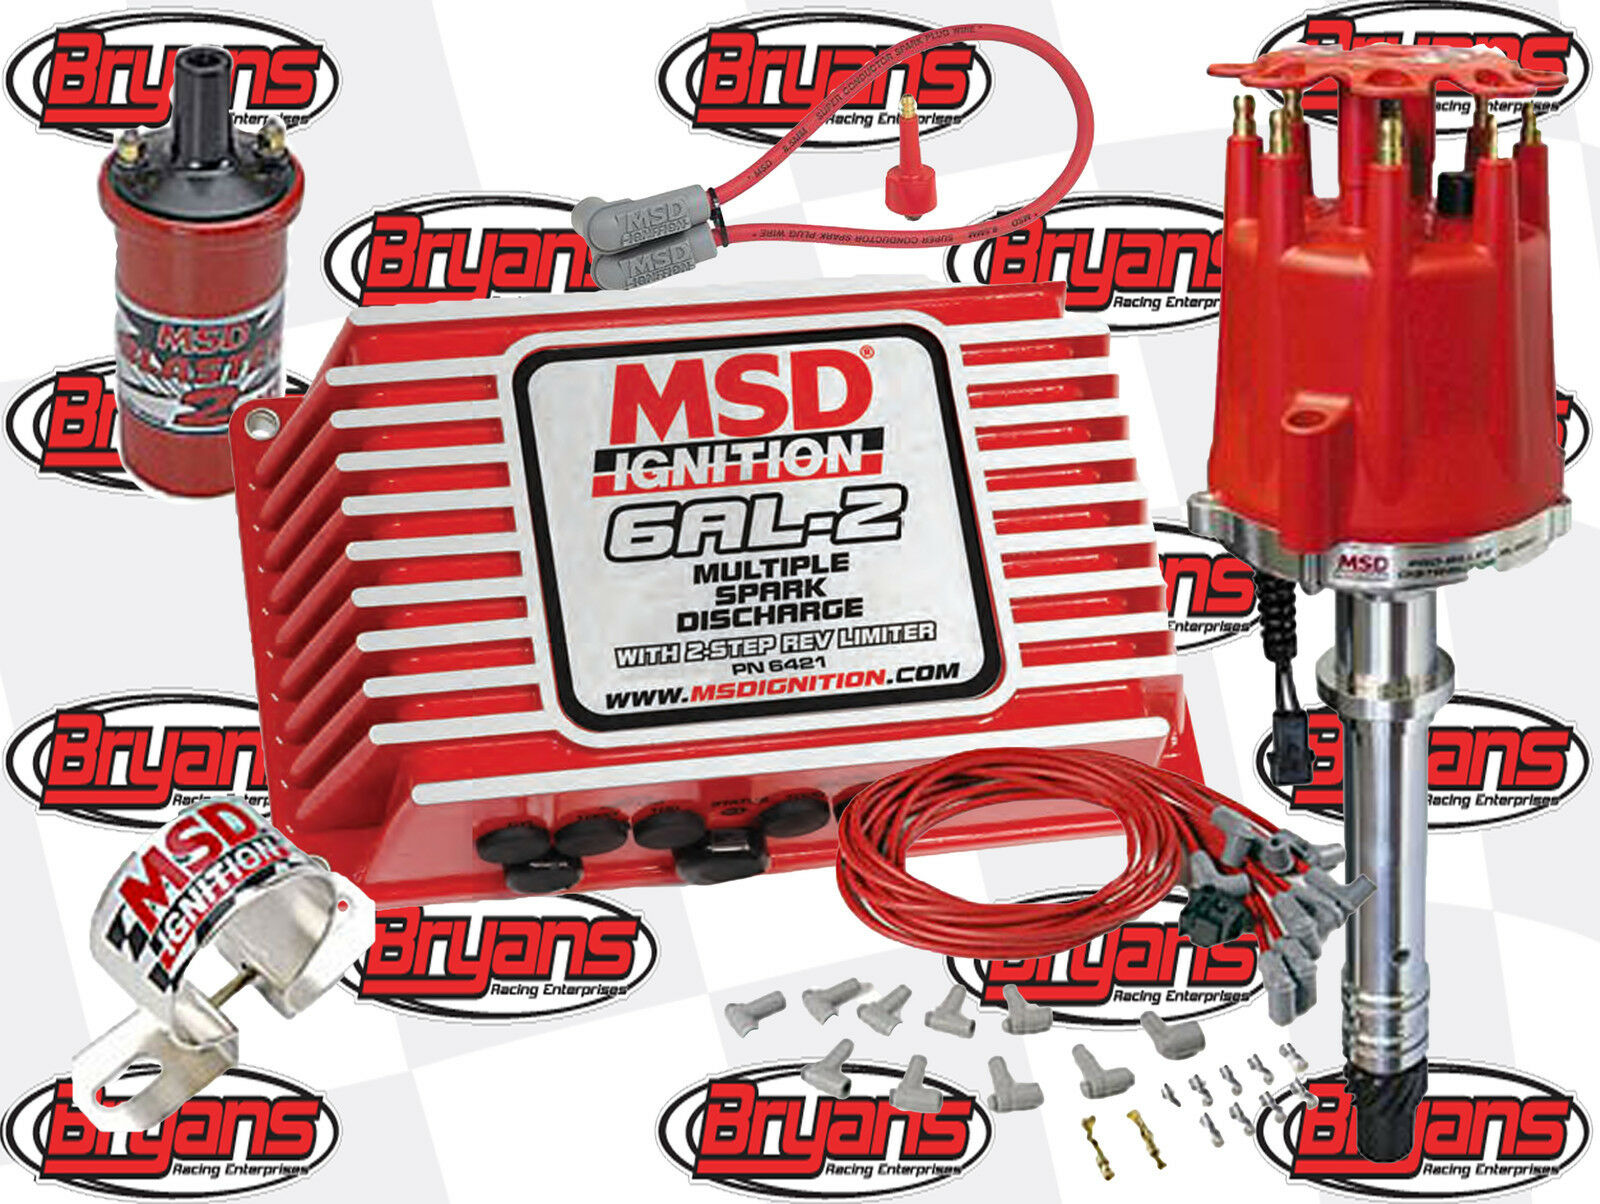 Msd 6421 6al 2 Ignition Kit Small Big Block Chevrolet Coil Wiring For Cylinder Engine Distributor Wires V8 1 Of 12only 5 Available